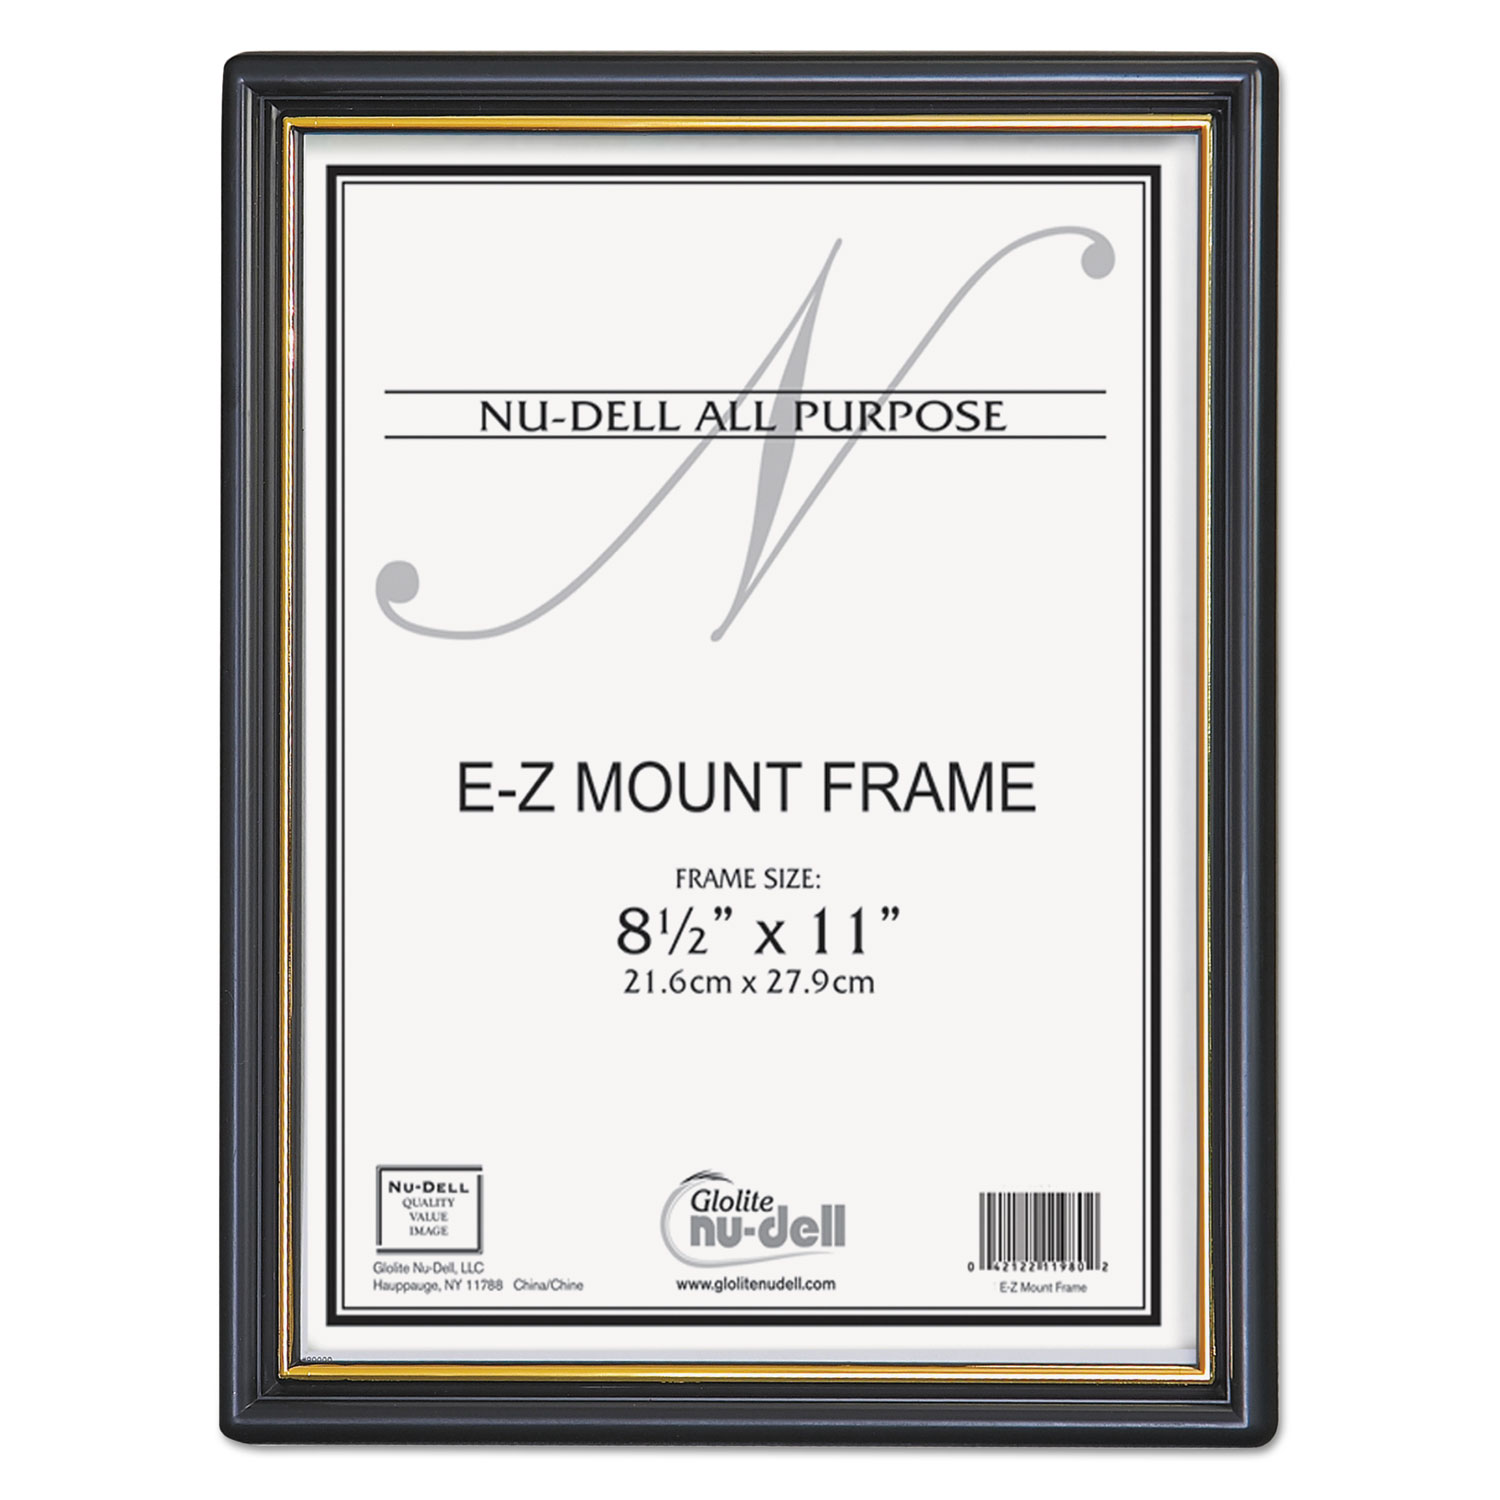 EZ Mount Document Frame with Trim Accent, Plastic Face , 8.5 x 11, Black/Gold